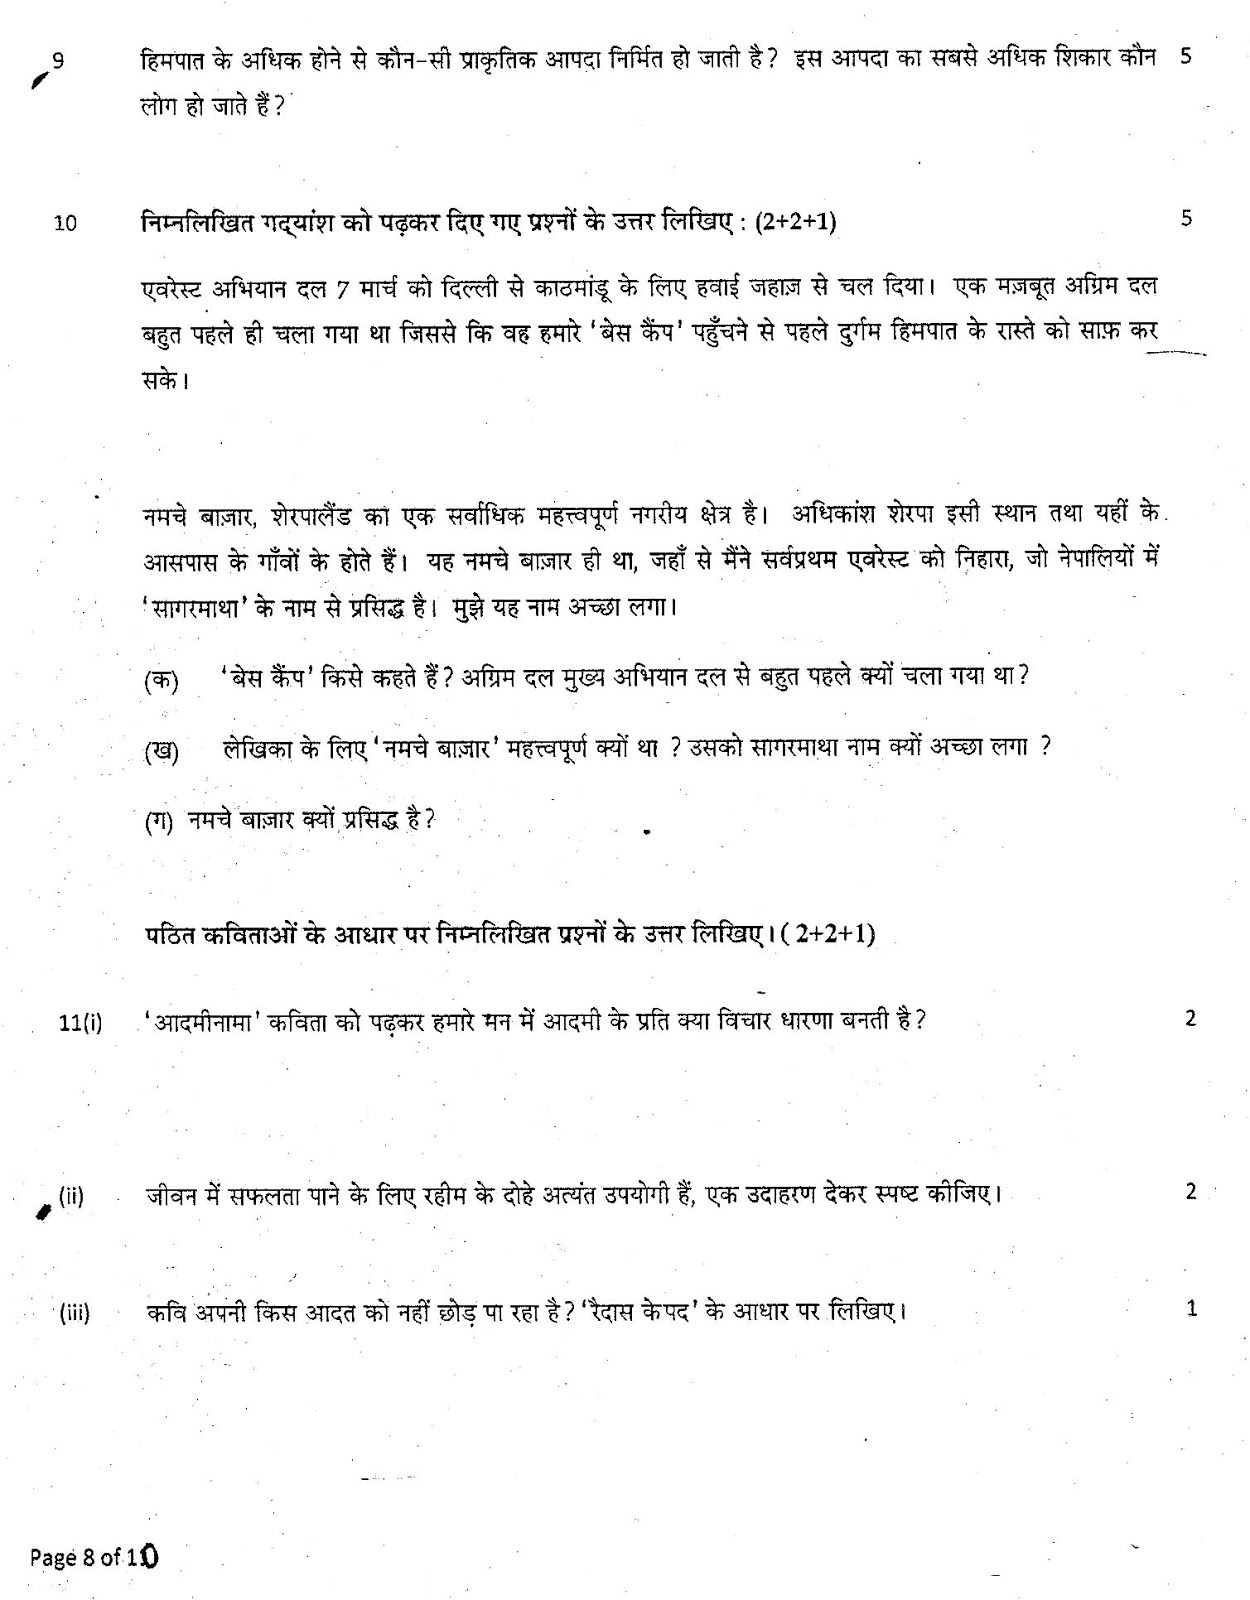 Essay on responsibility in hindi